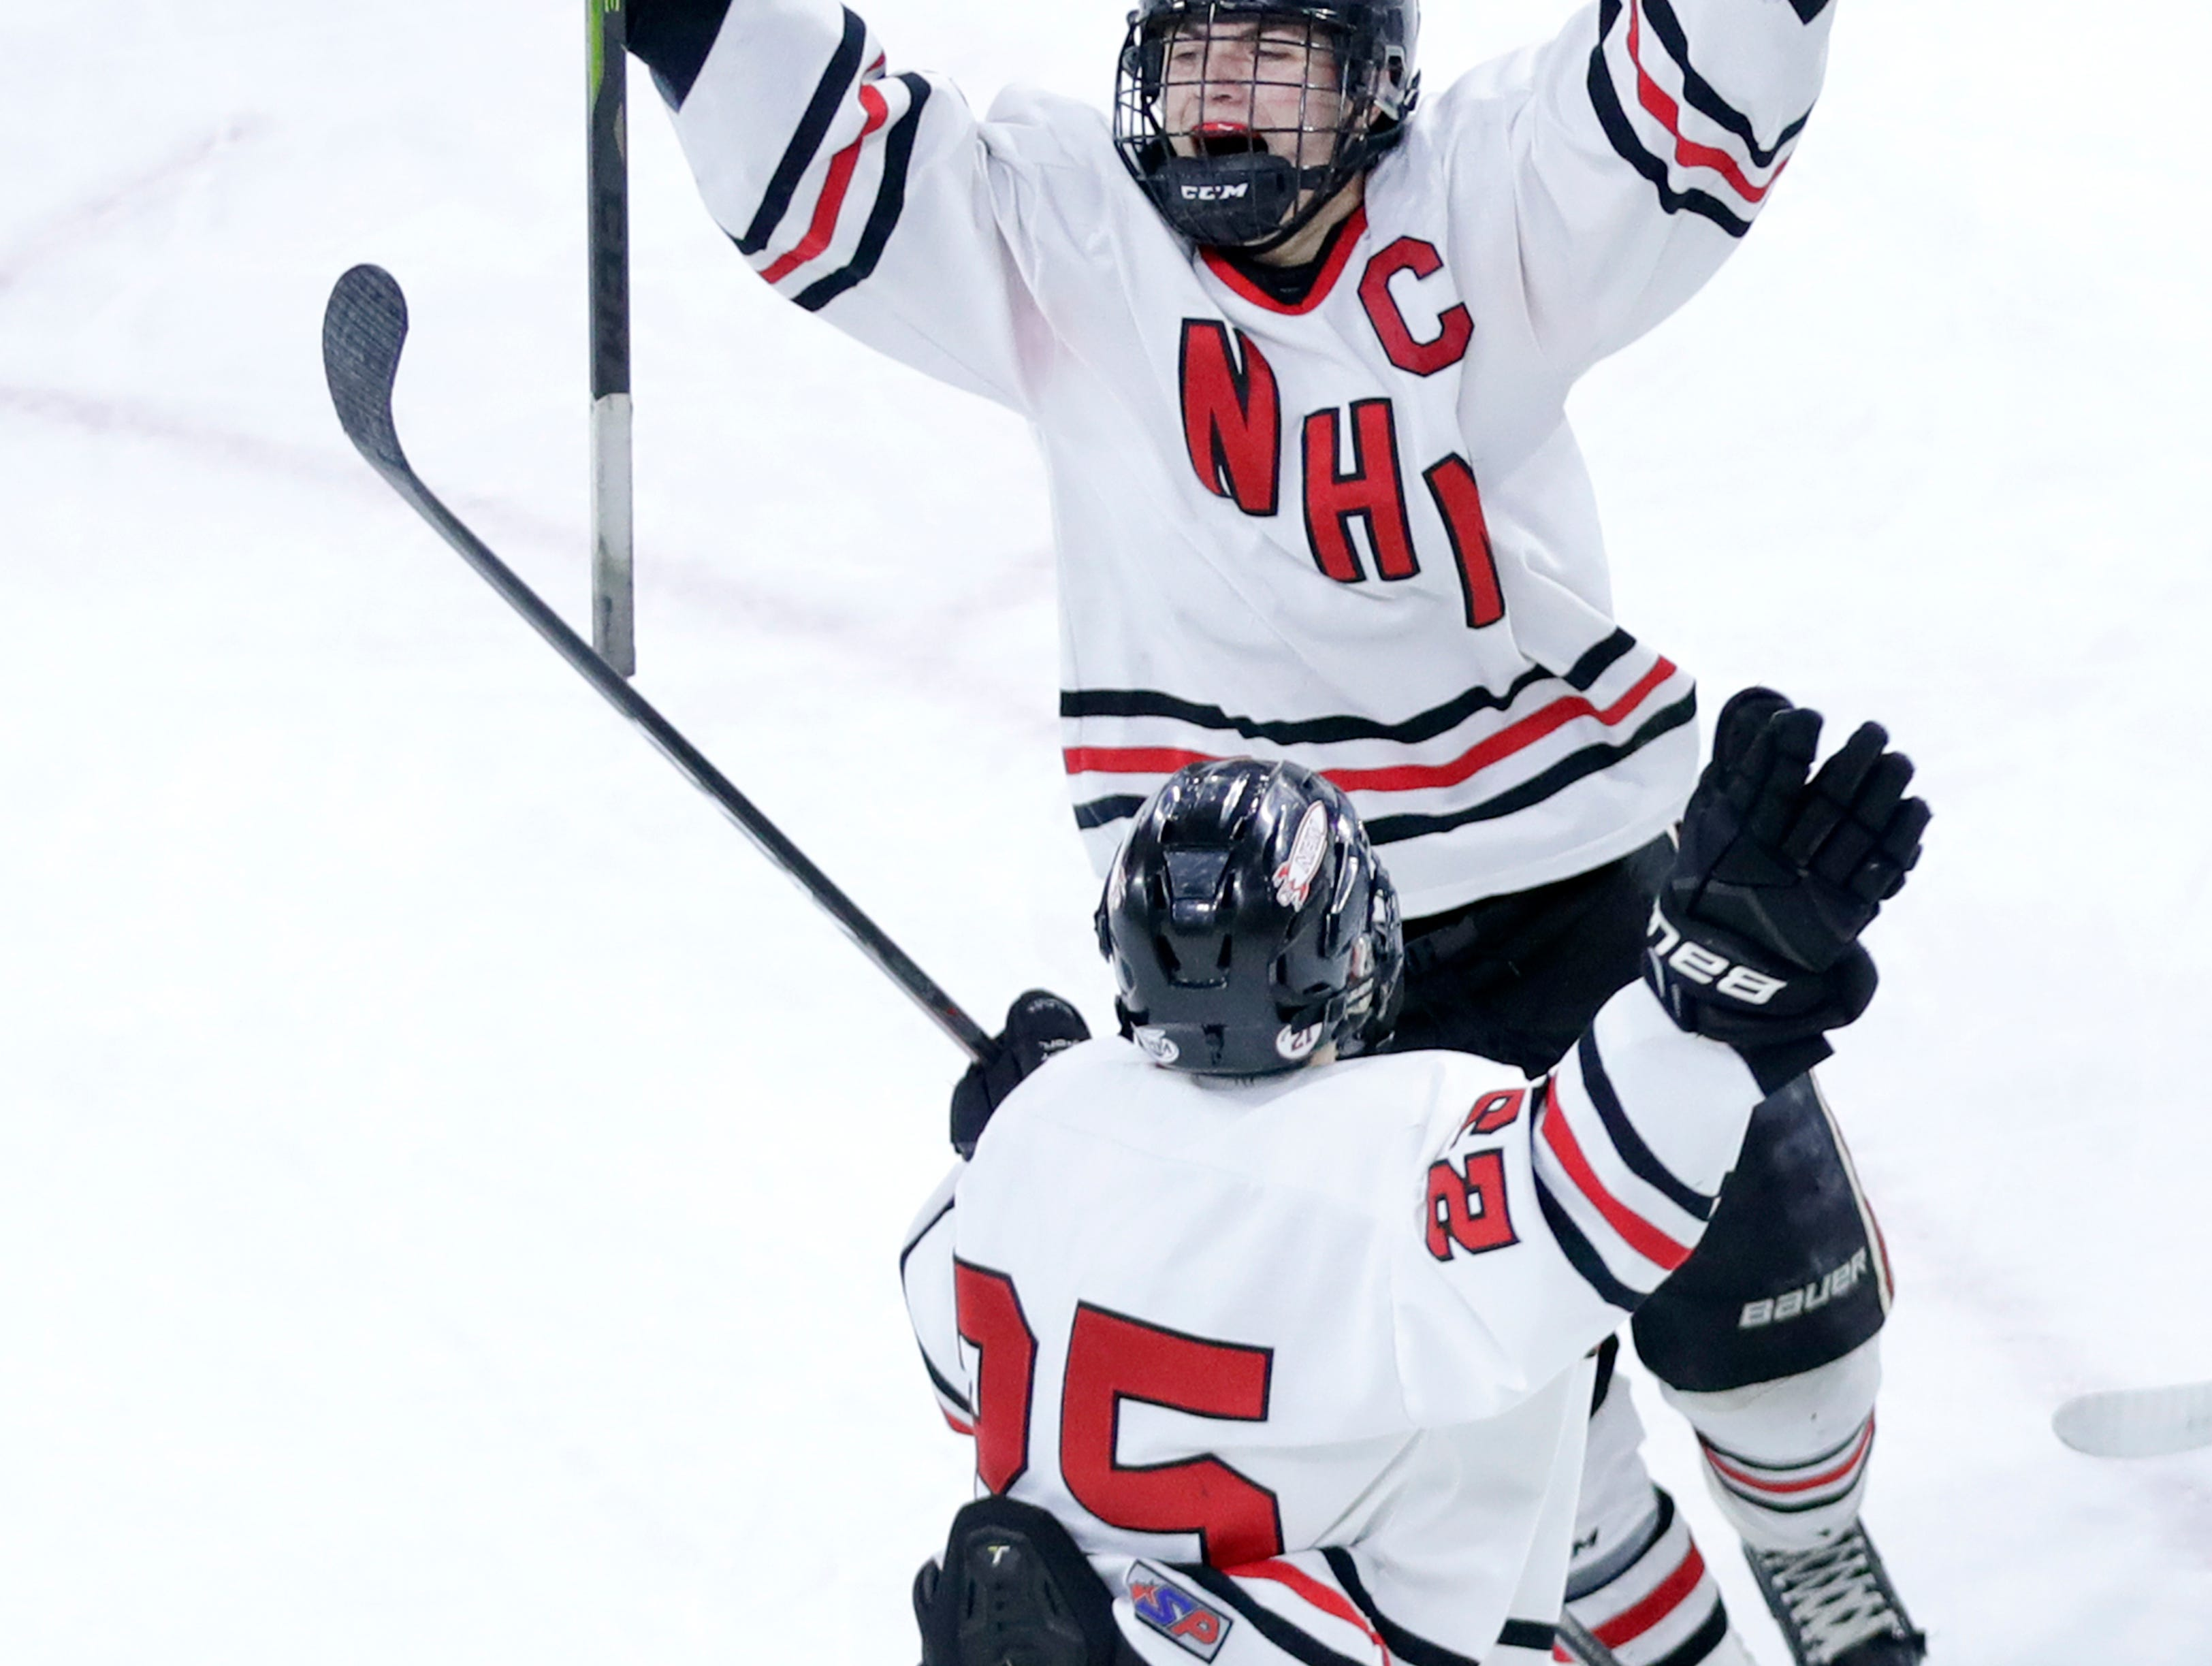 Neenah/Hortonville/MenashaÕs Dillion Fox celebrates with Neenah/Hortonville/MenashaÕs Drew Sutton after scoring a goal against Hudson Thursday, Feb. 28, 2019, at Veterans Memorial Coliseum in Madison, Wis.